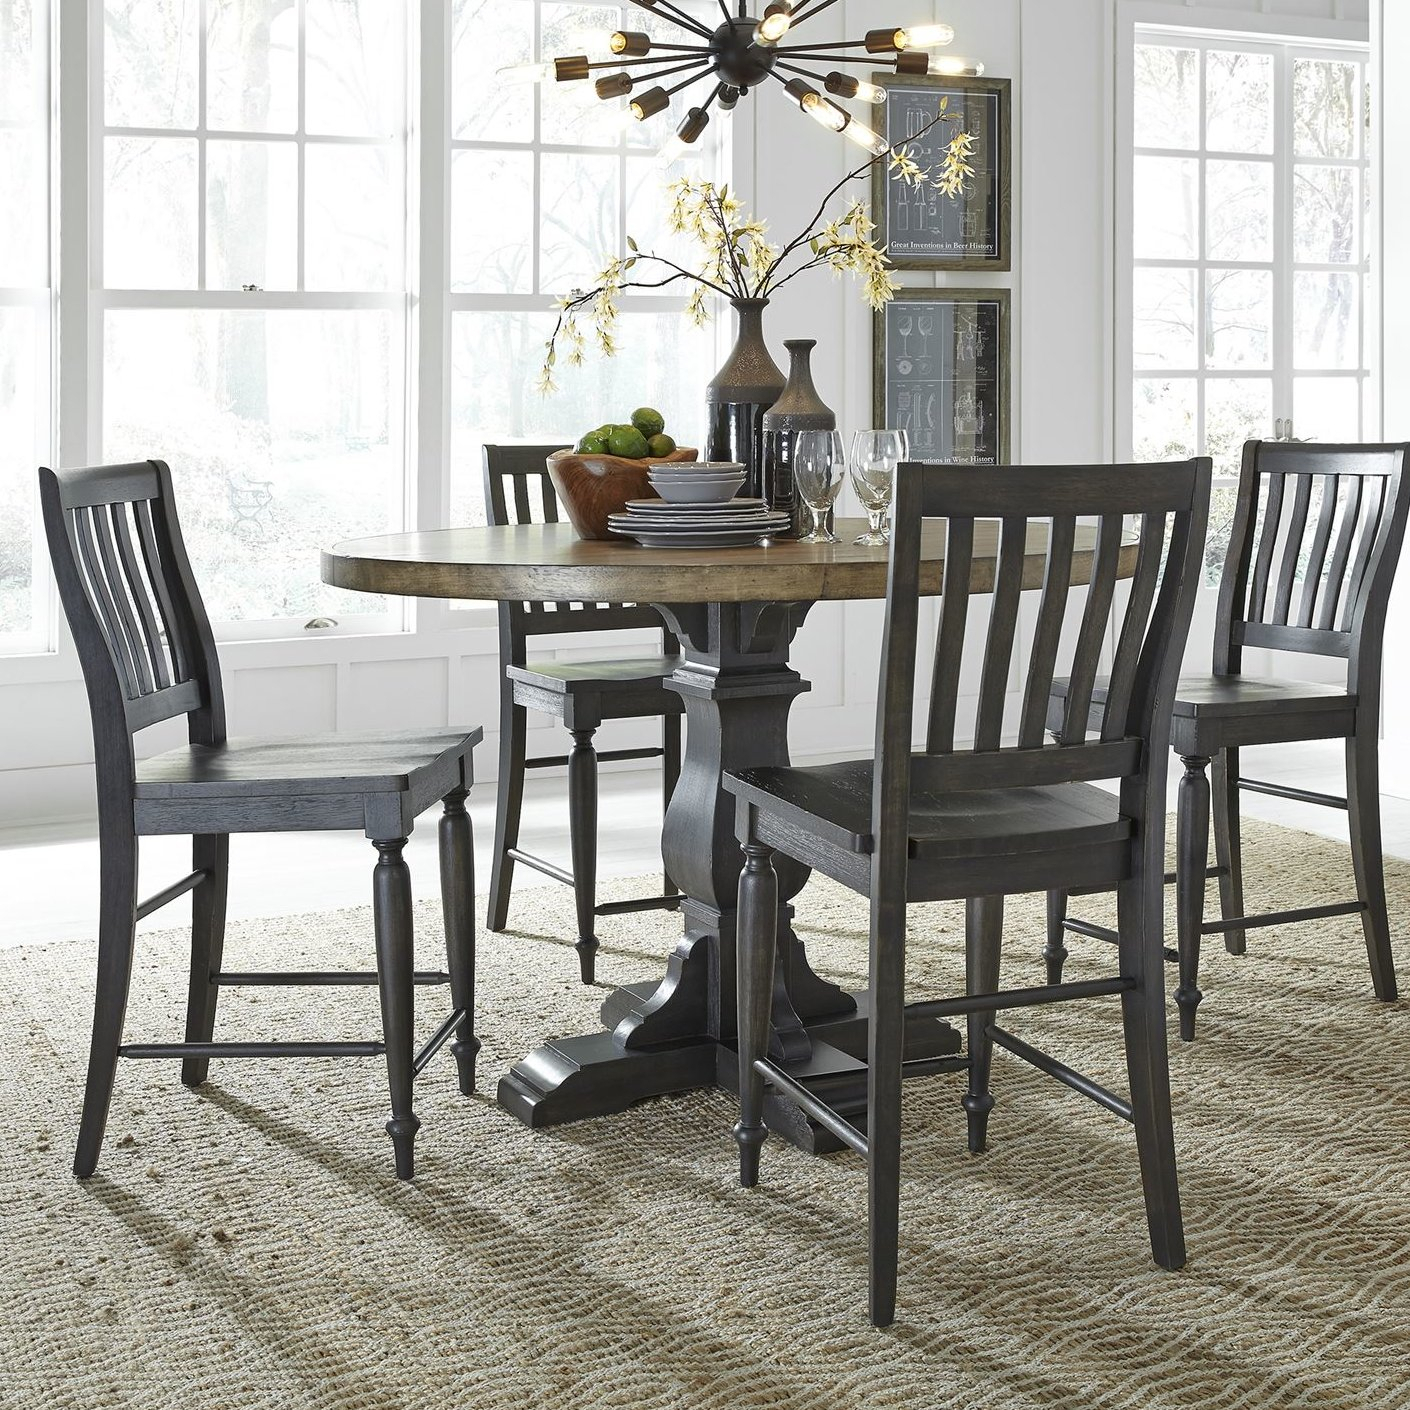 Nazareth 5 Piece Counter Height Dining Set For Latest Goodman 5 Piece Solid Wood Dining Sets (Set Of 5) (Image 17 of 20)